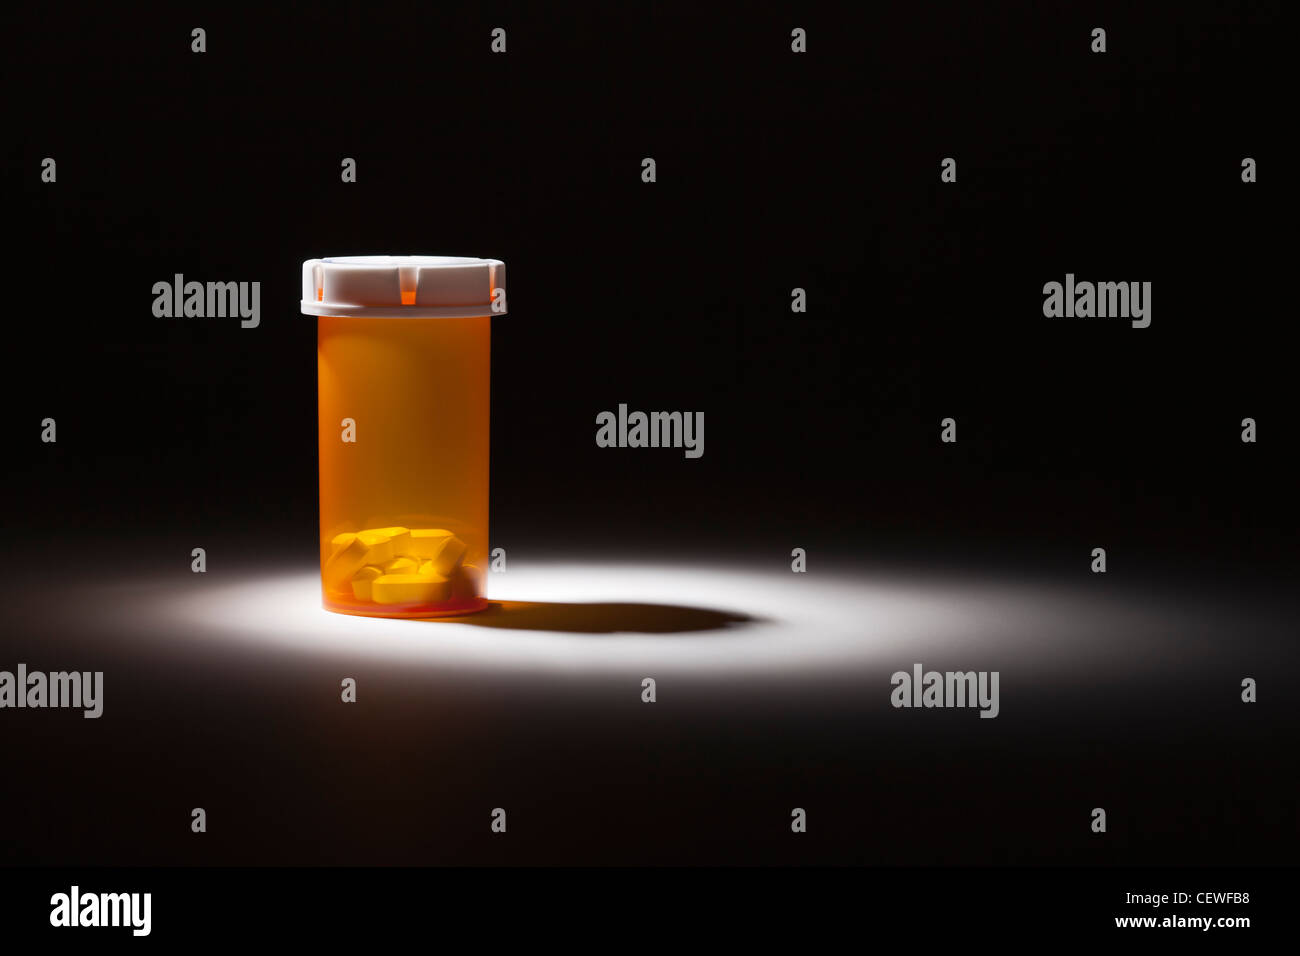 Medicine Bottle and Pills Under Spot Light Abstract. - Stock Image